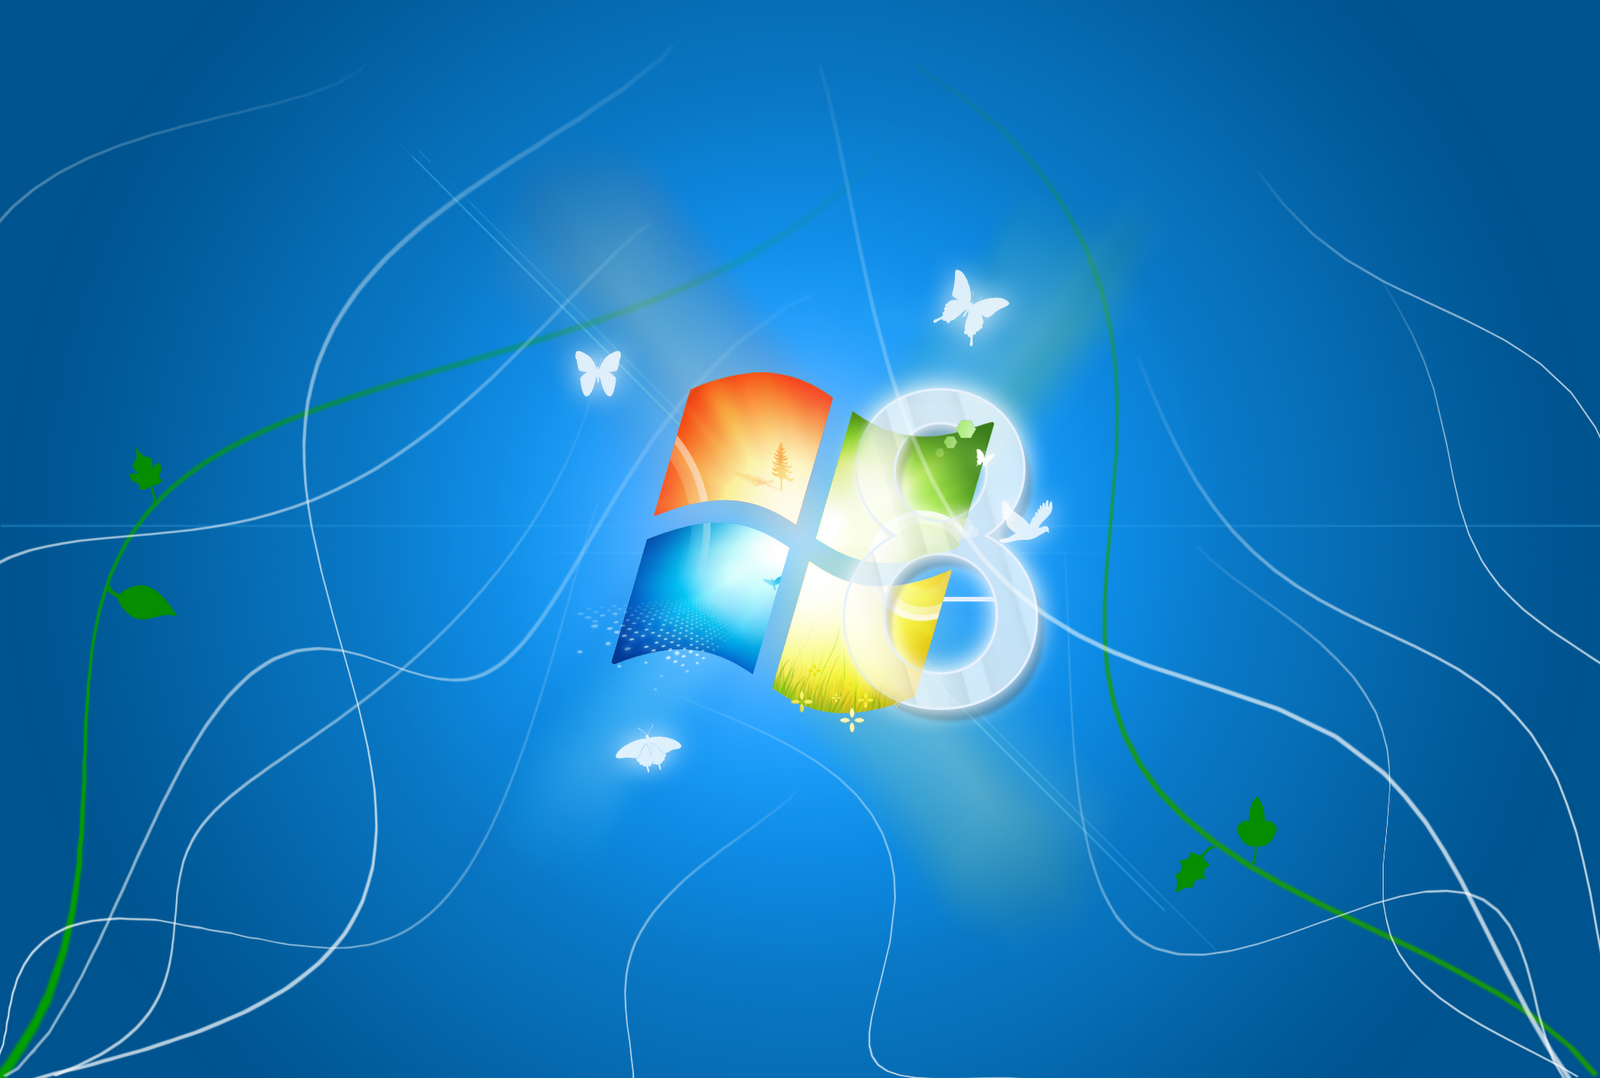 Free HD Wallpapers For Windows